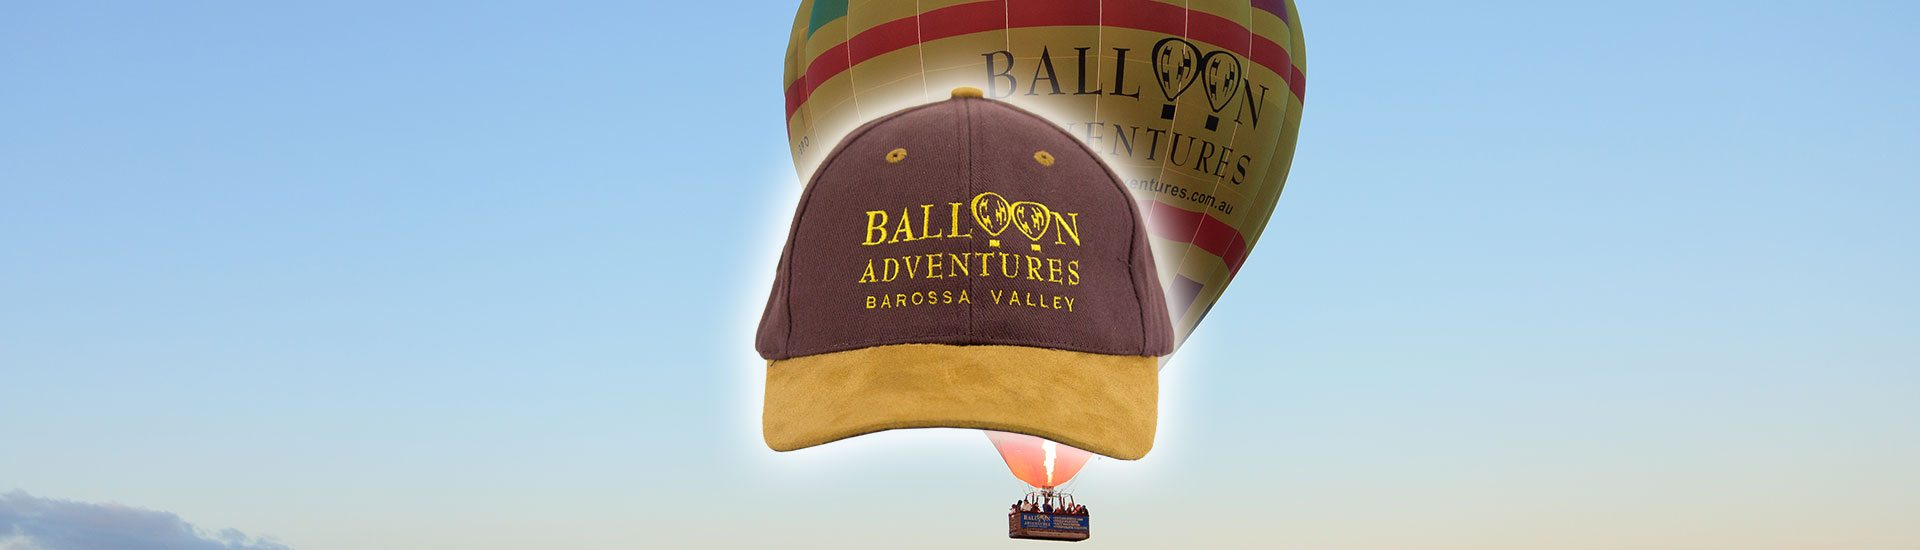 balloon-adventures-flights-over-the-barossa-valley-merchandise-brown-cap